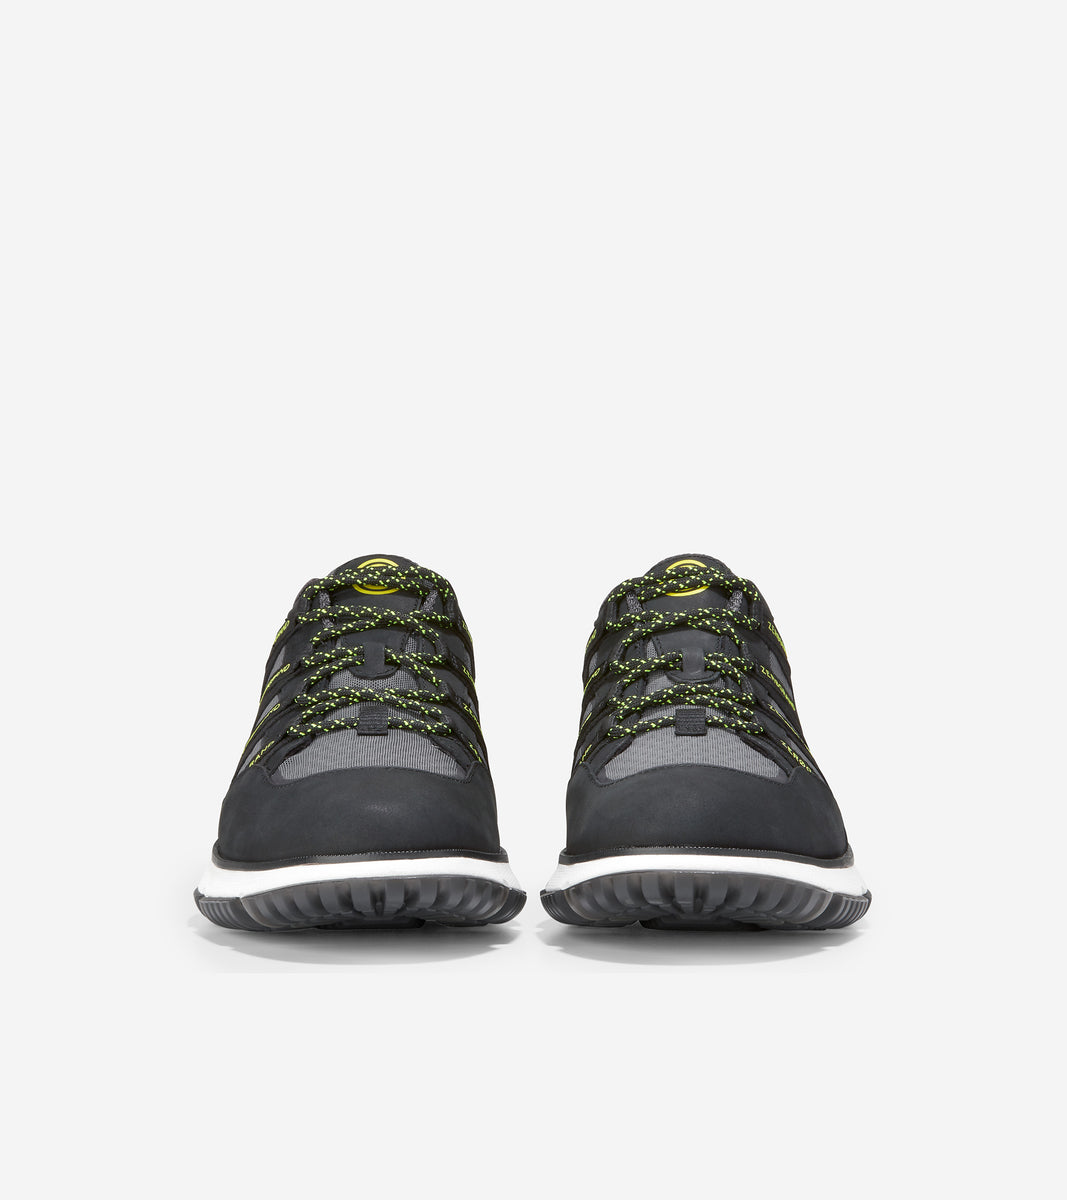 4.ZERØGRAND Seventy-Five Sneaker Men's